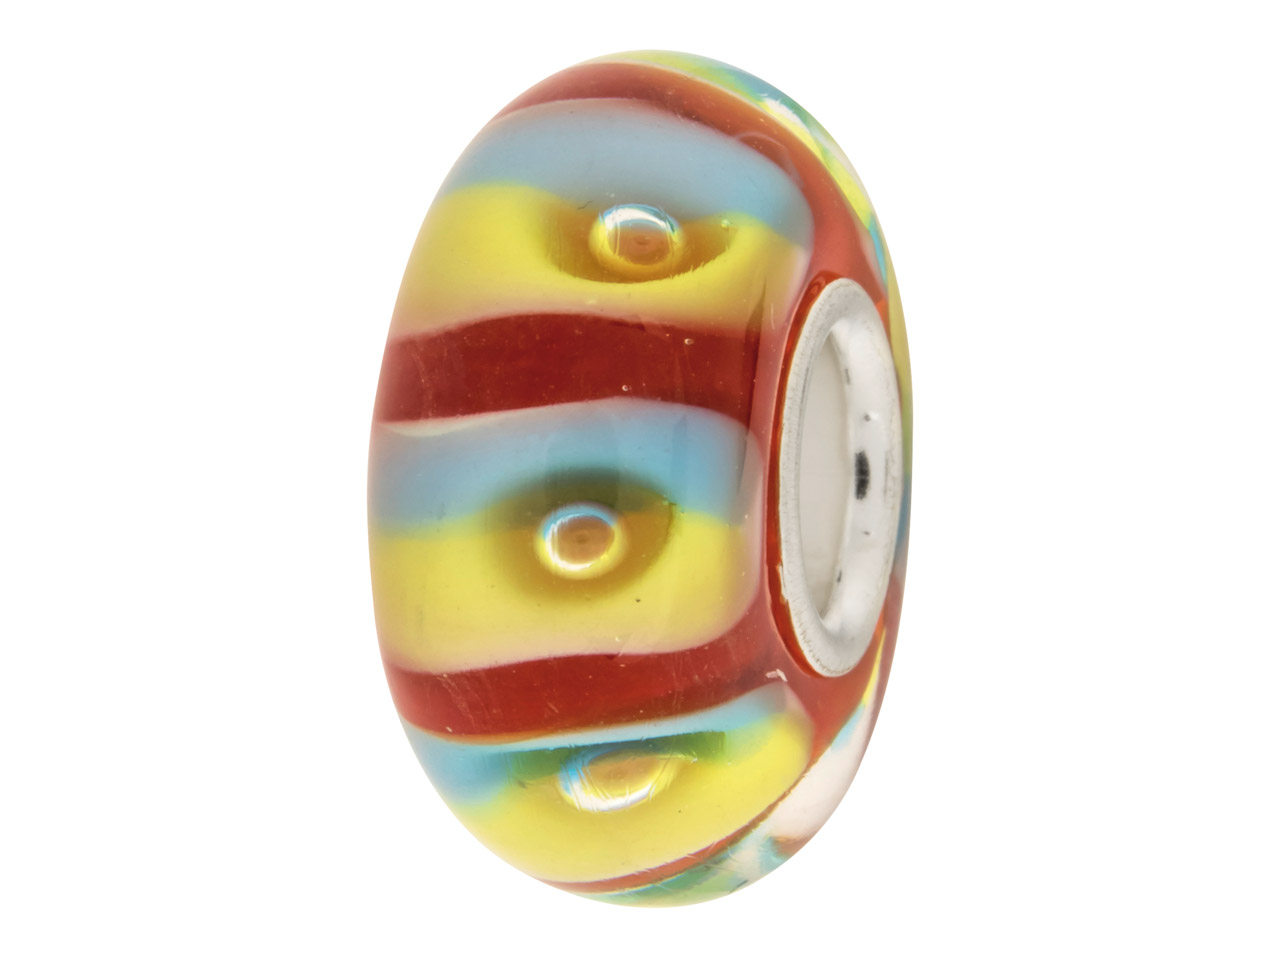 Glass Charm Bead, Red With Blue And Yellow Stripes And Bubbles,         Sterling Silver Core